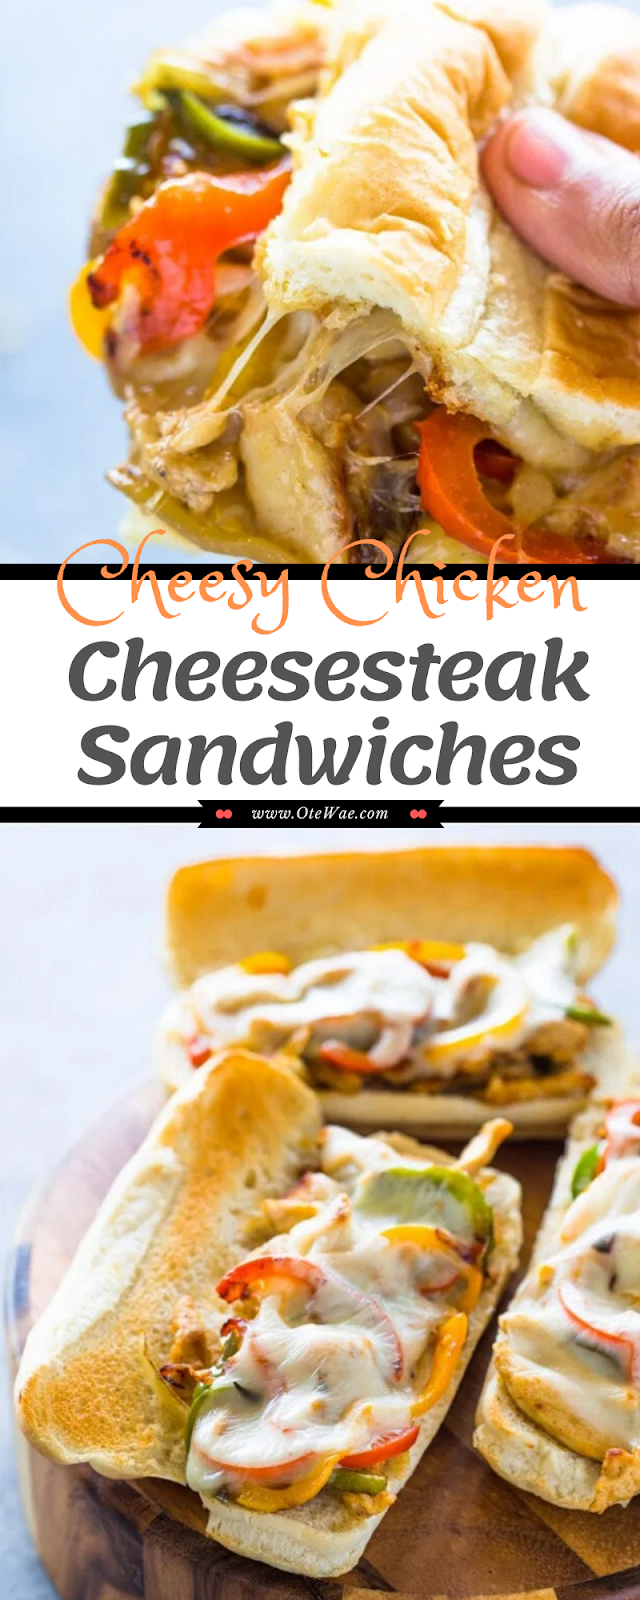 Cheesy Chicken Cheesesteak Sandwiches